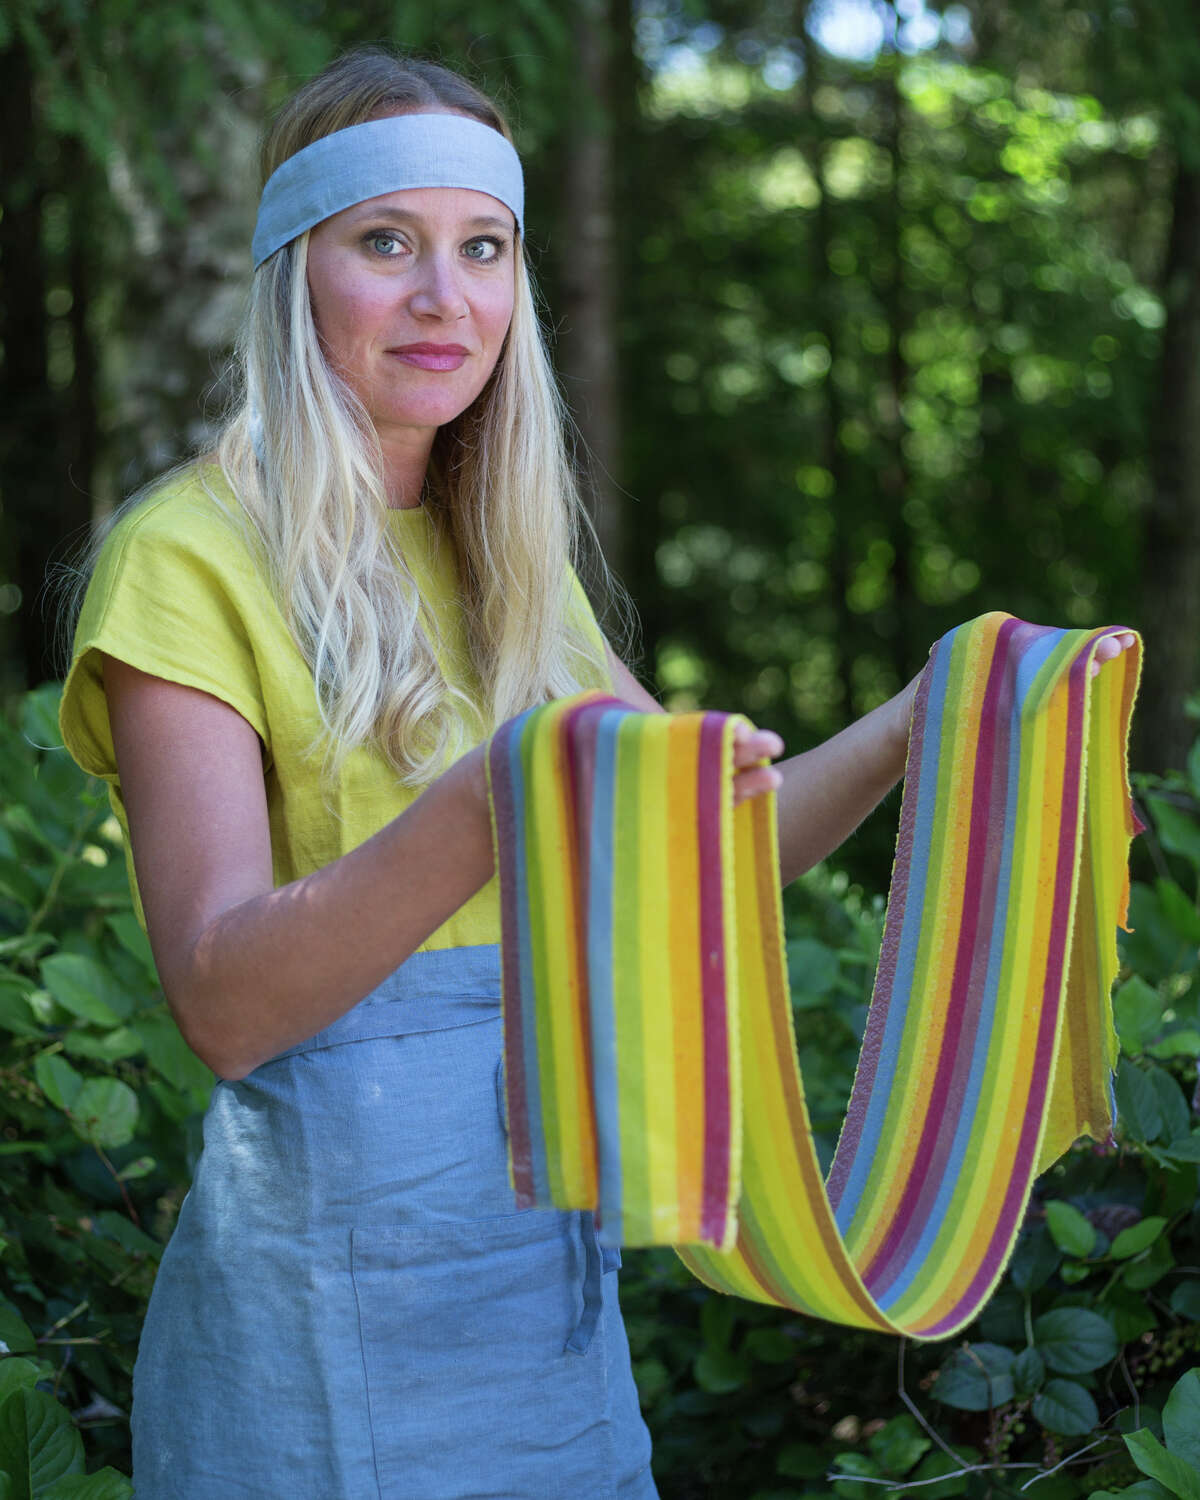 Linda Miller Nicholson poses with a long sheet of freshly made rainbow pasta at her home in Preston on Tuesday, July 18, 2017.